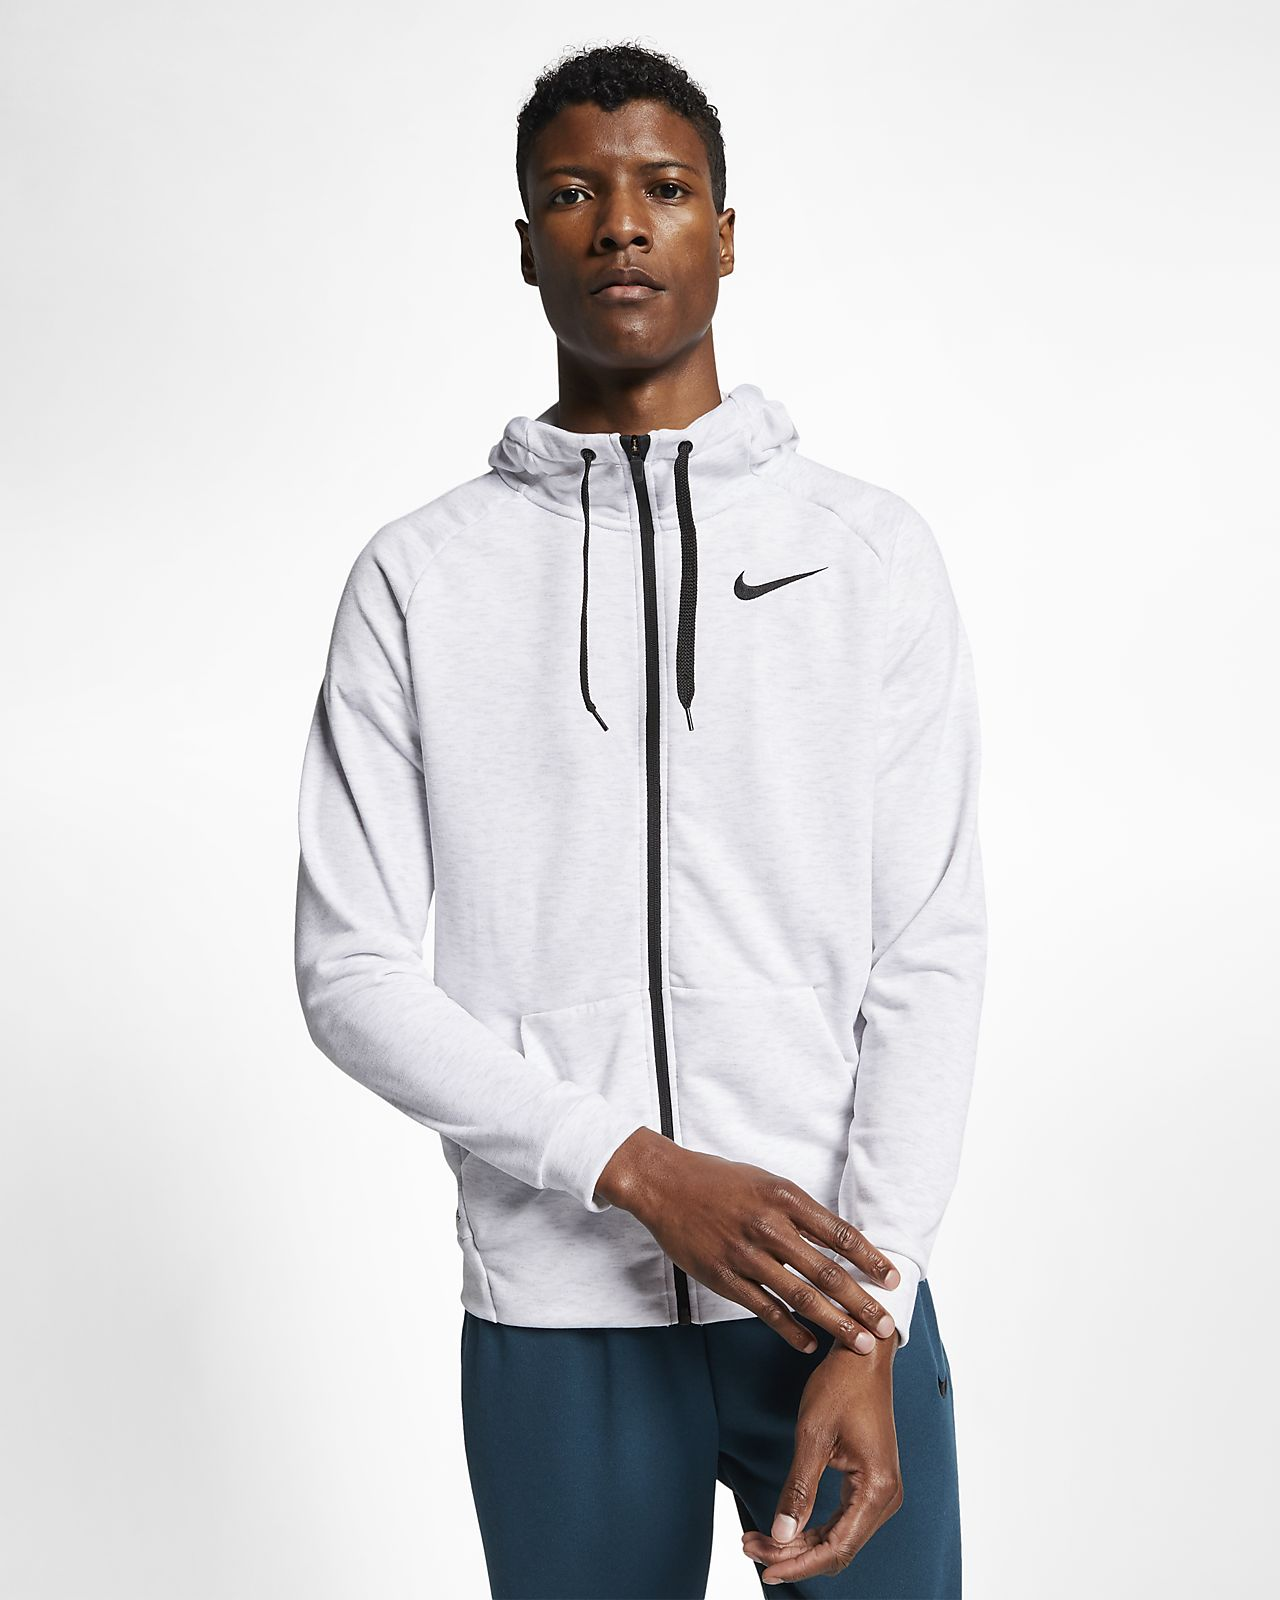 15f905c905 Nike Dri-FIT Men's Full-Zip Training Hoodie. Nike.com